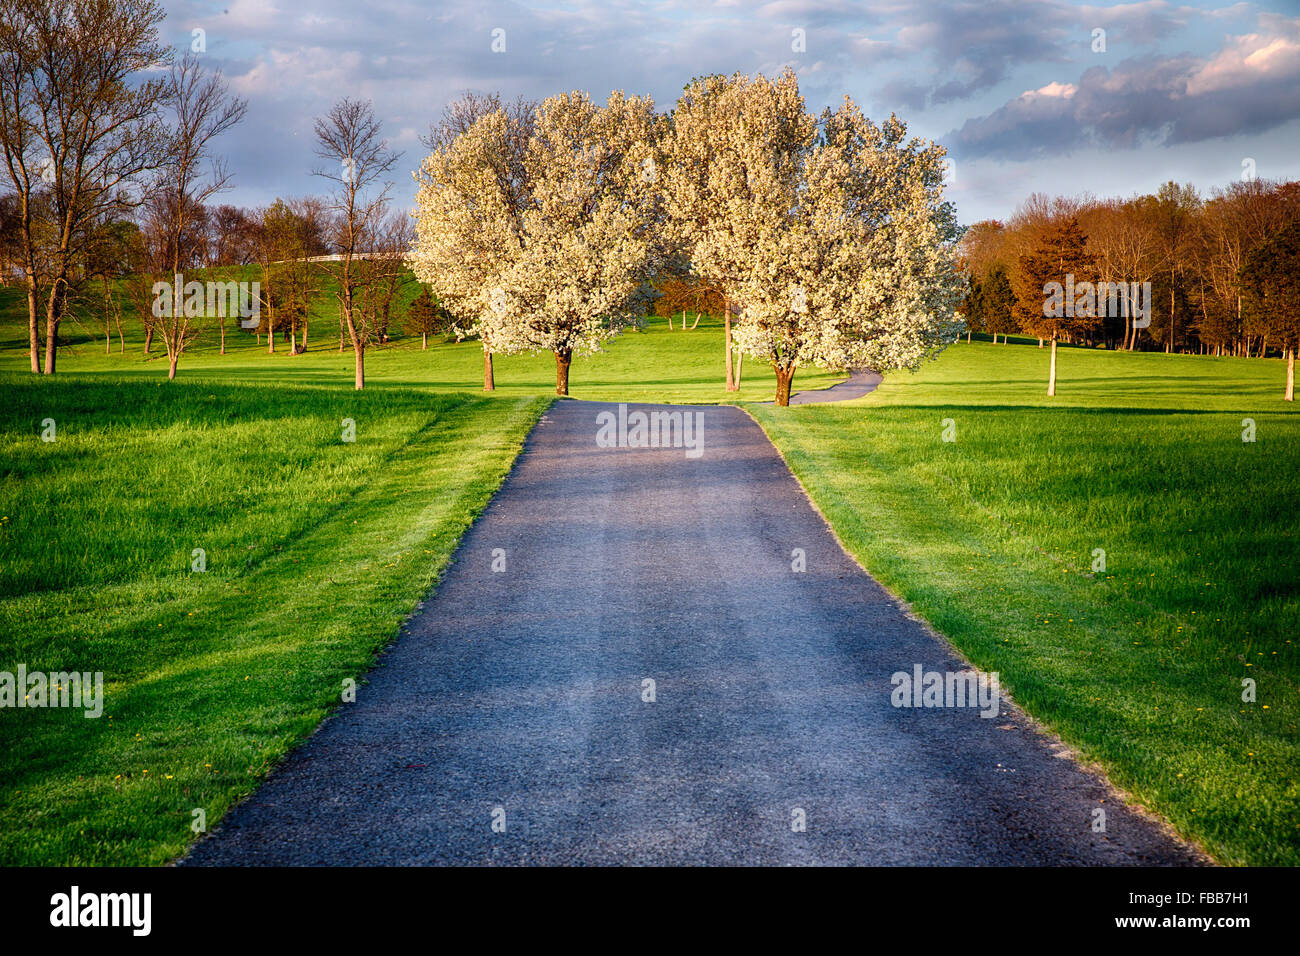 View of a Country Road Crossing a Farm with Two Flowering Trees, Pottersville, Hunterdon County, New Jersey - Stock Image